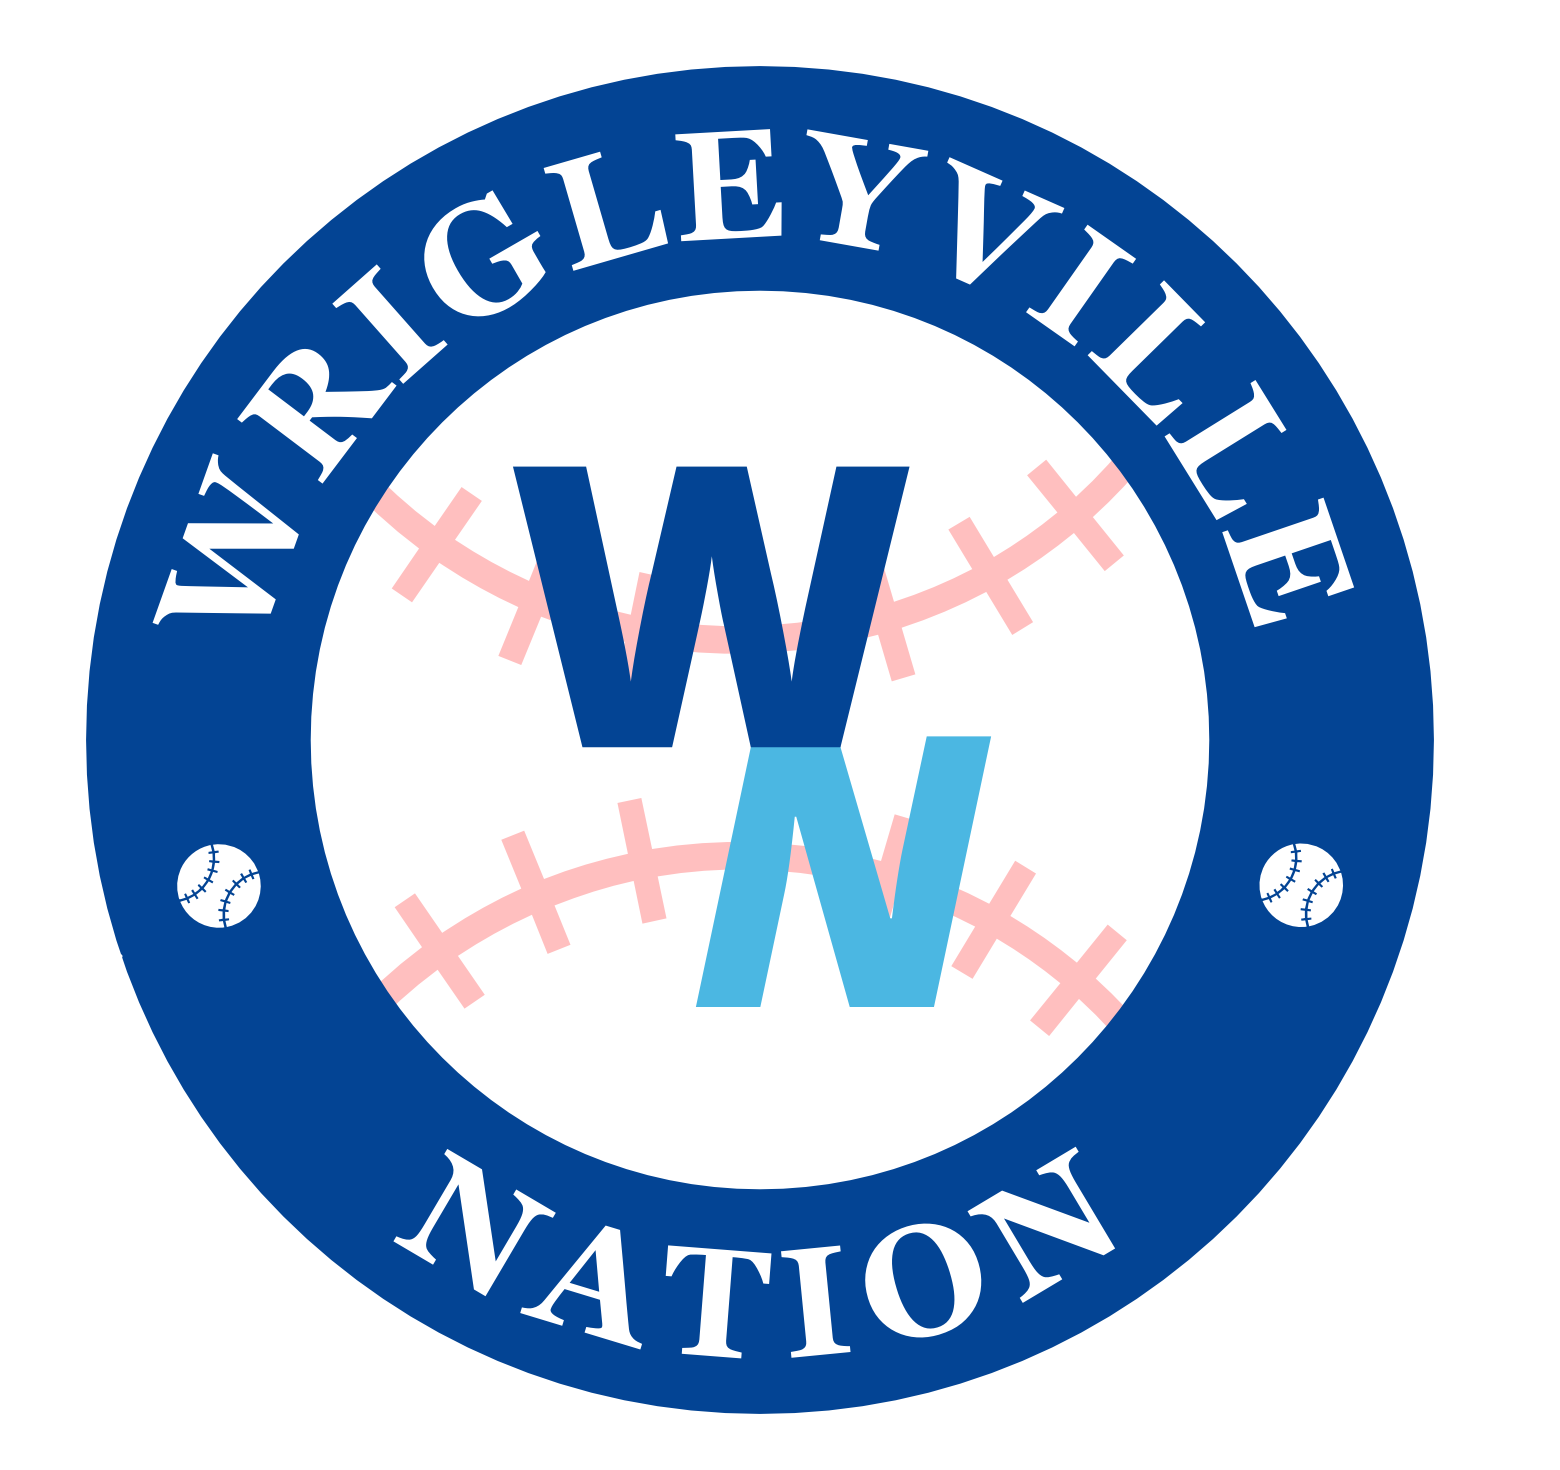 Wrigleyville Nation Ep 223 - Guest: Ryan Davis, MLB Has A Plan, New Rules, Cubs Baseball Returns show art